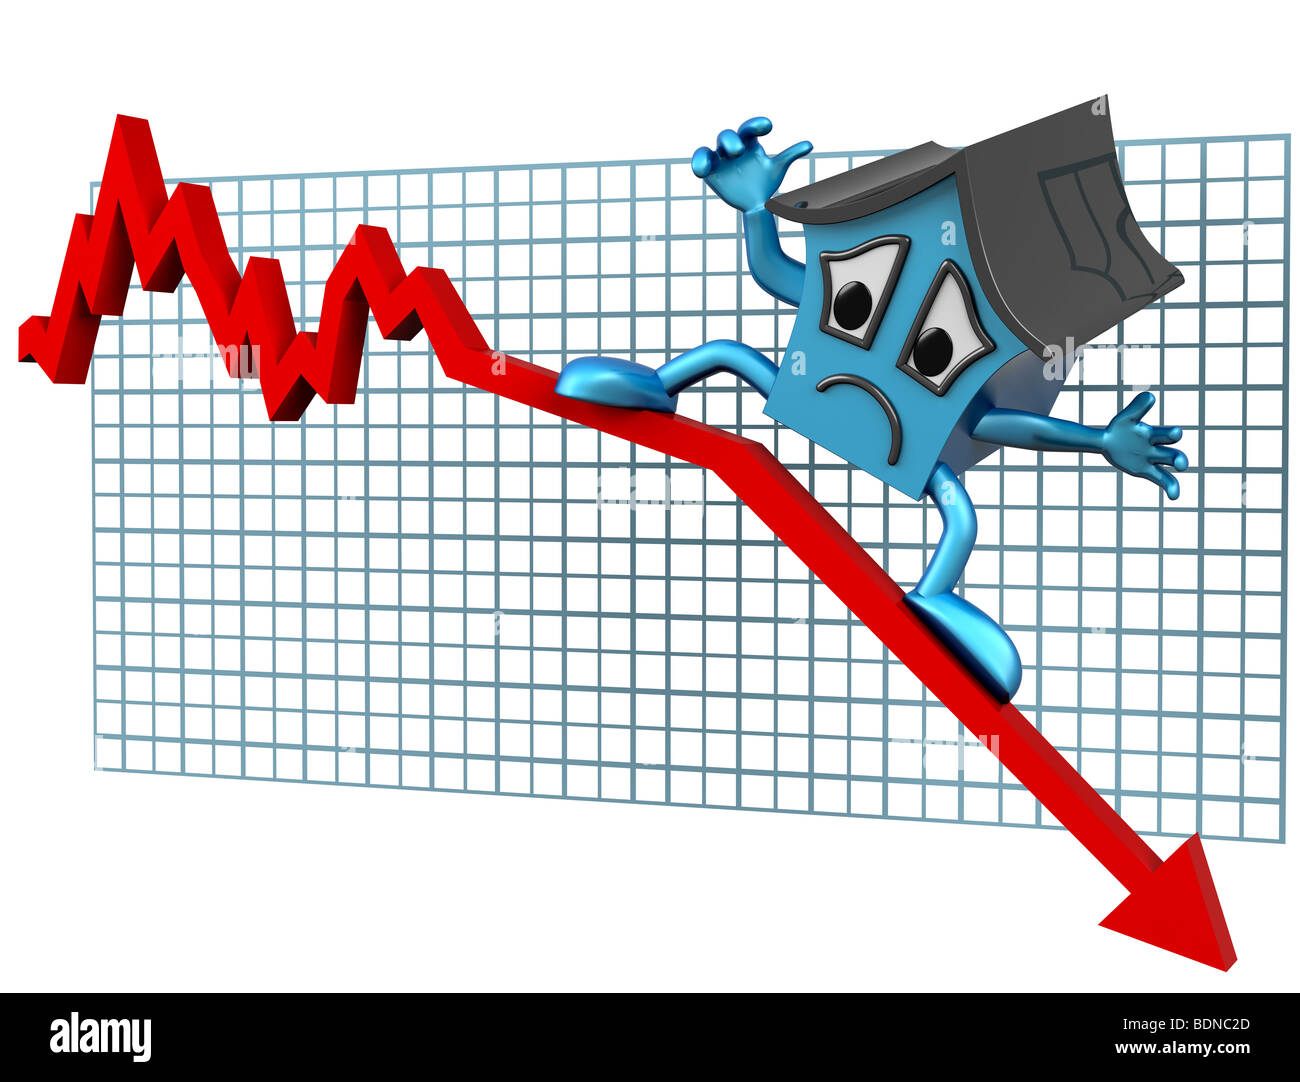 Isolated illustration of a house surfing downwards on a declining graph - Stock Image